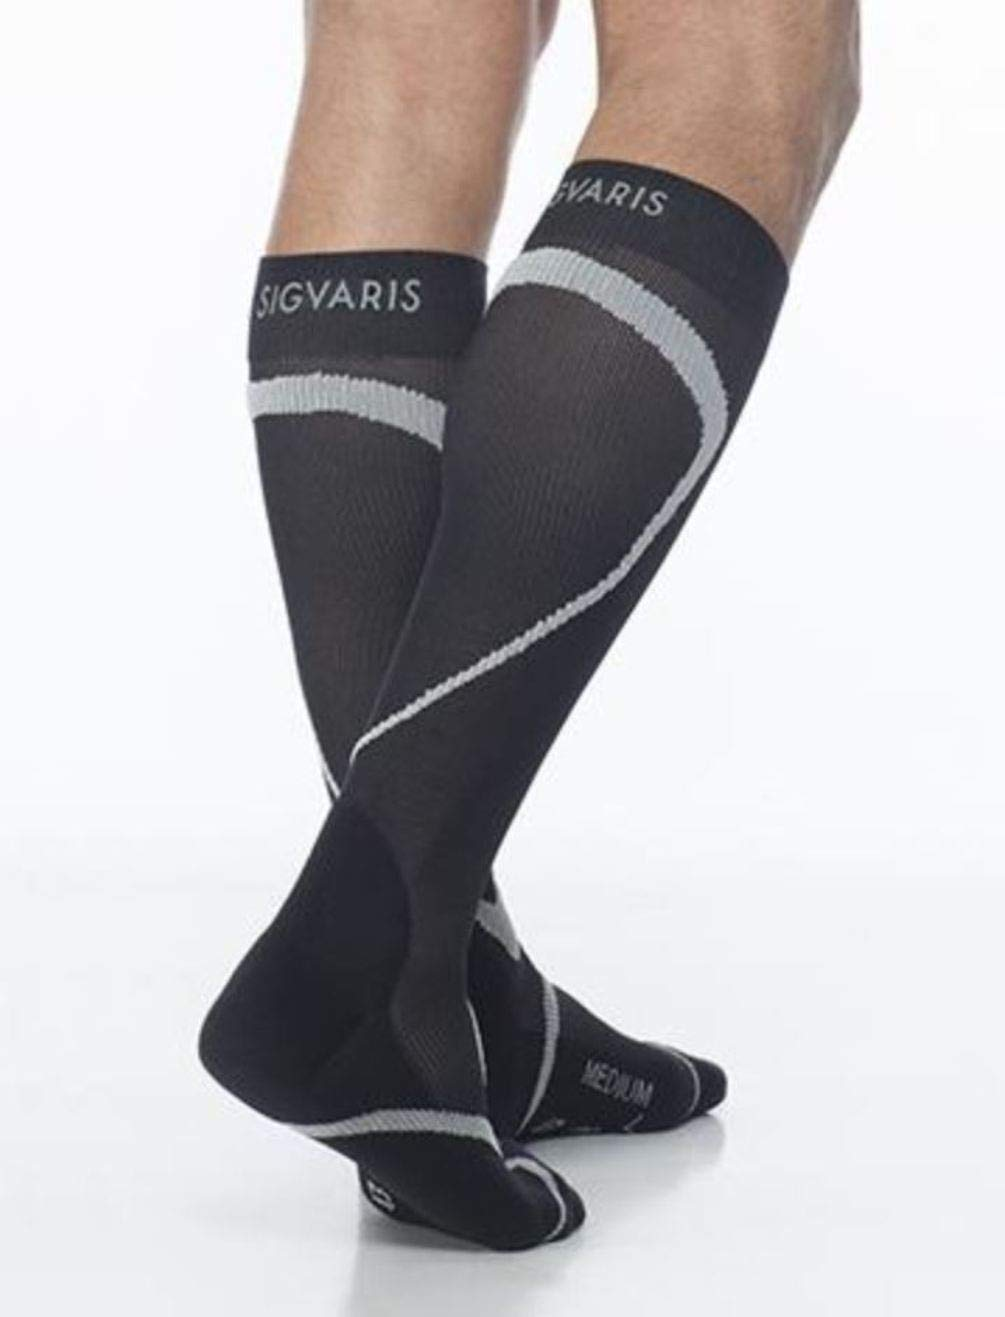 SIGVARIS Traverse Sock 412 Calf High Compression 20-30mmHg by SIGVARIS (Image #1)